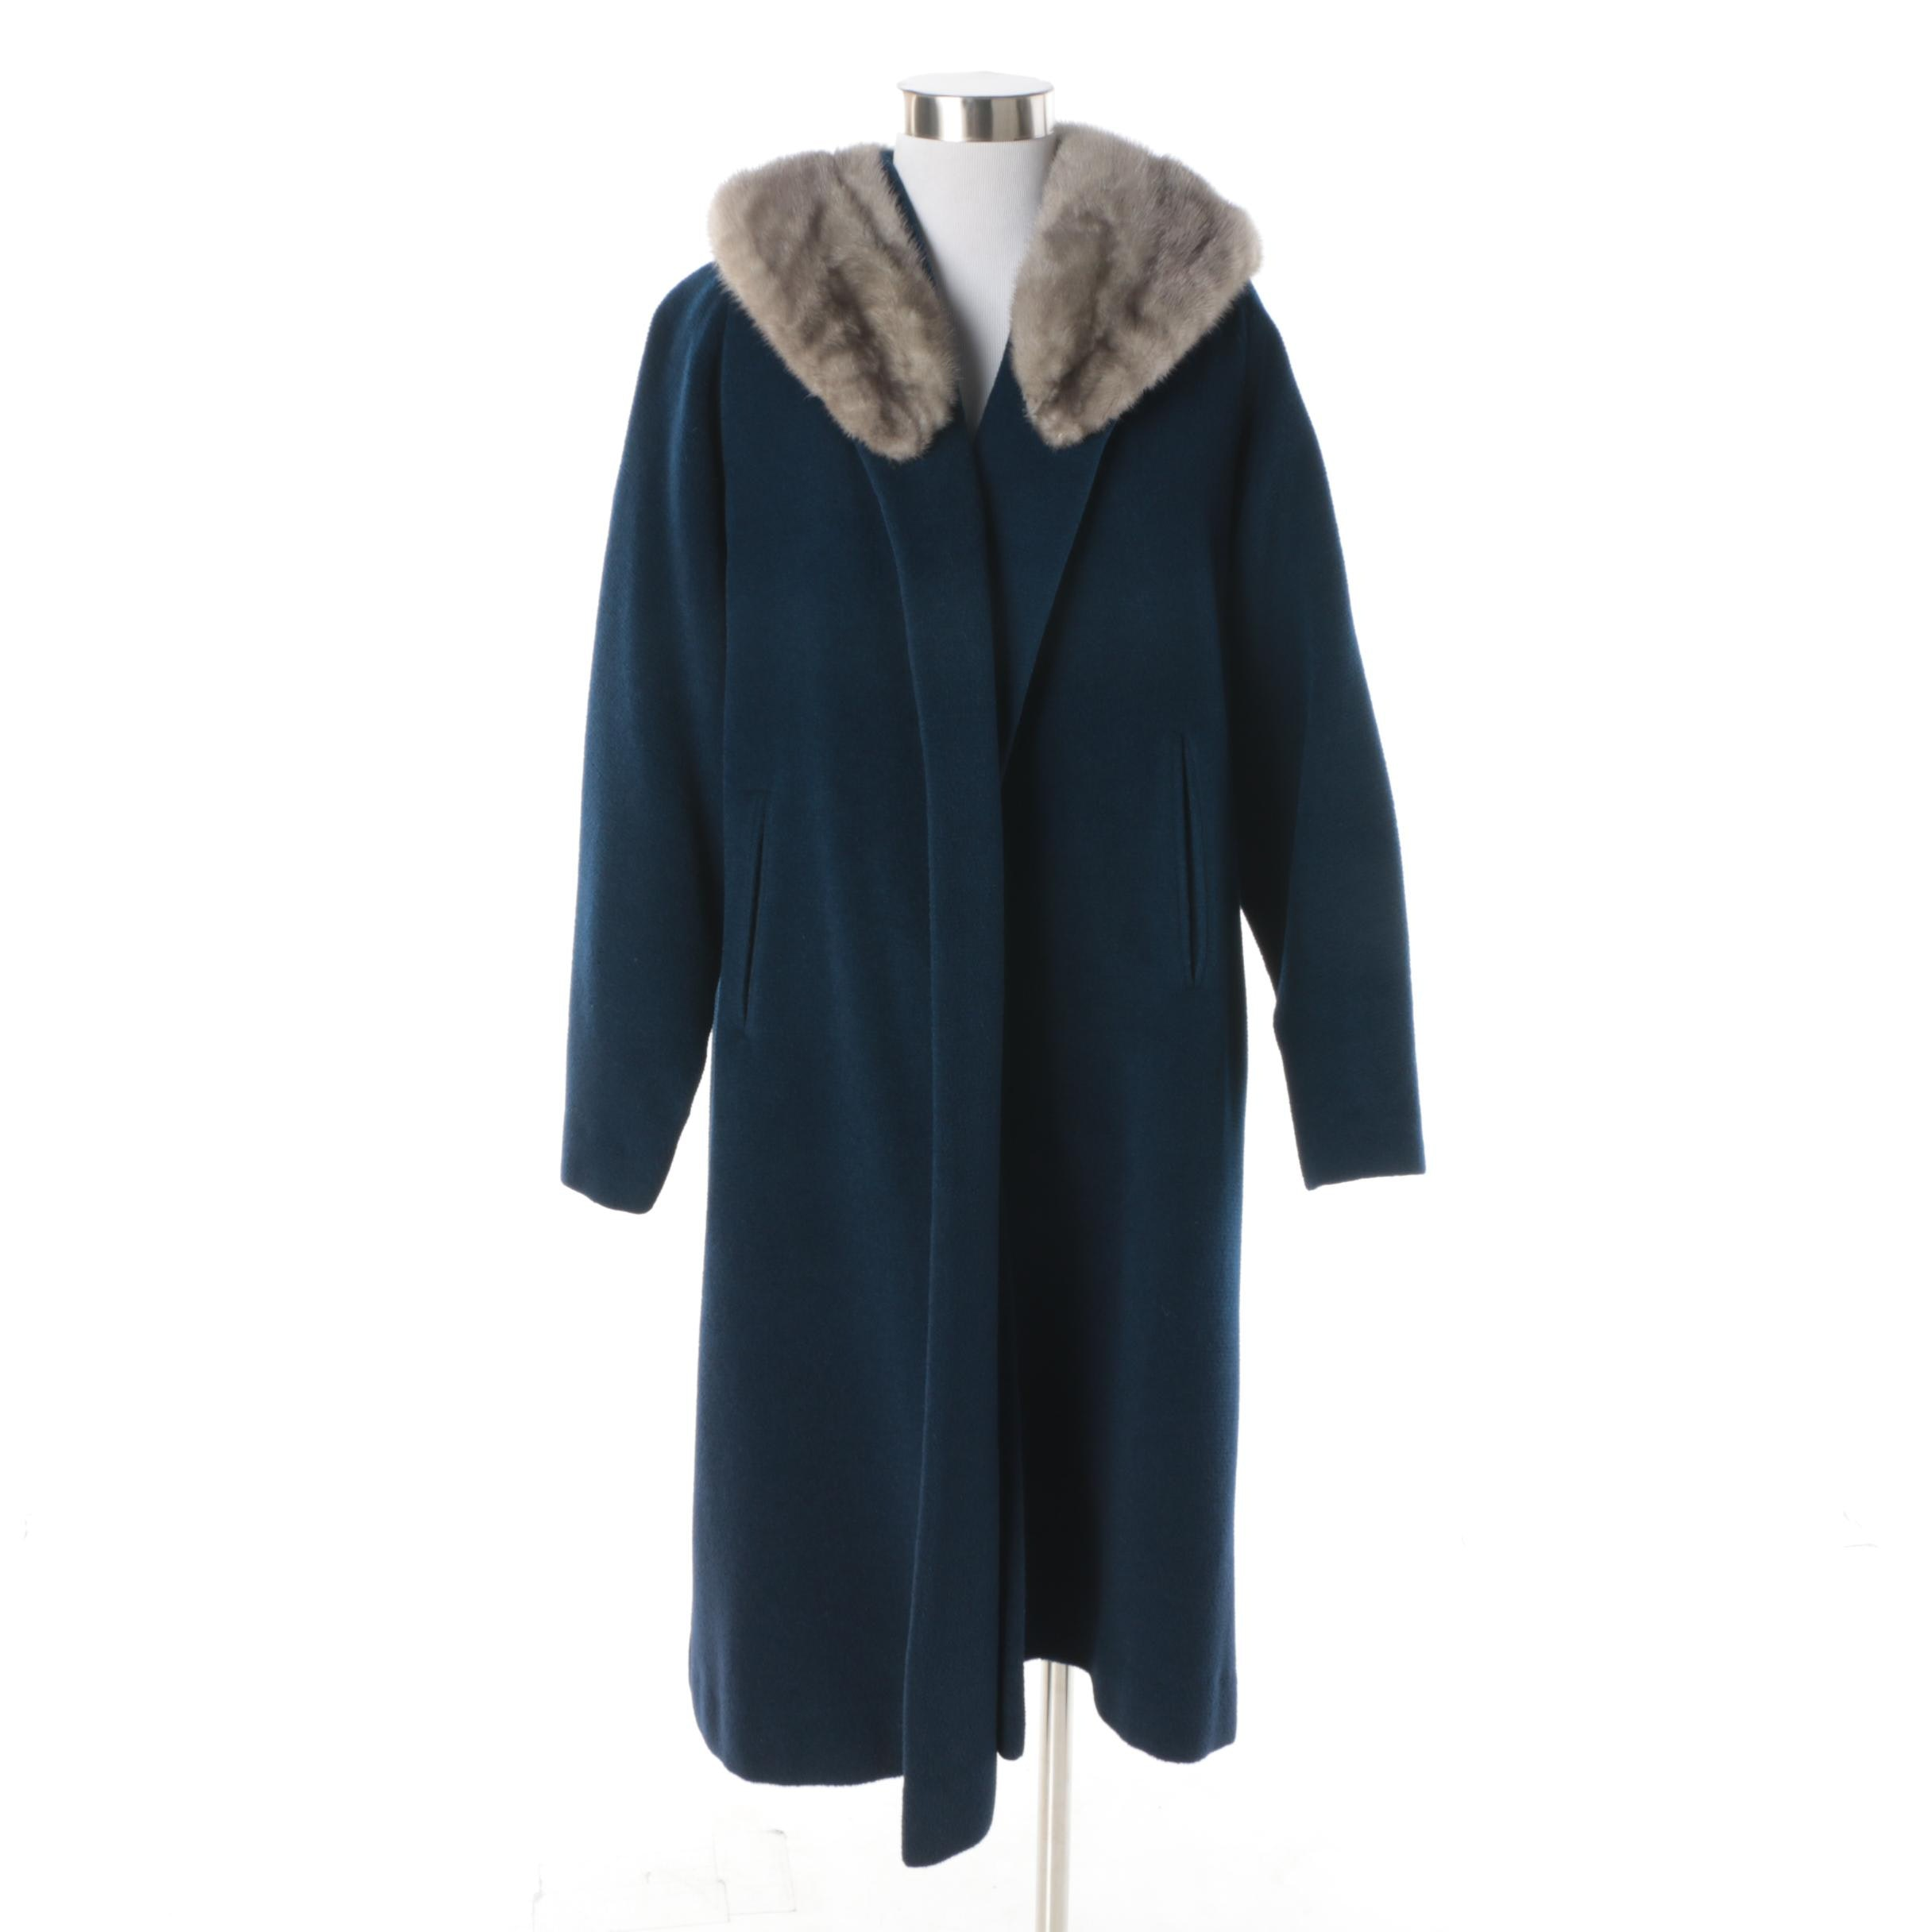 Vintage Hirsch Blue Wool Coat with Grey Mink Fur Collar